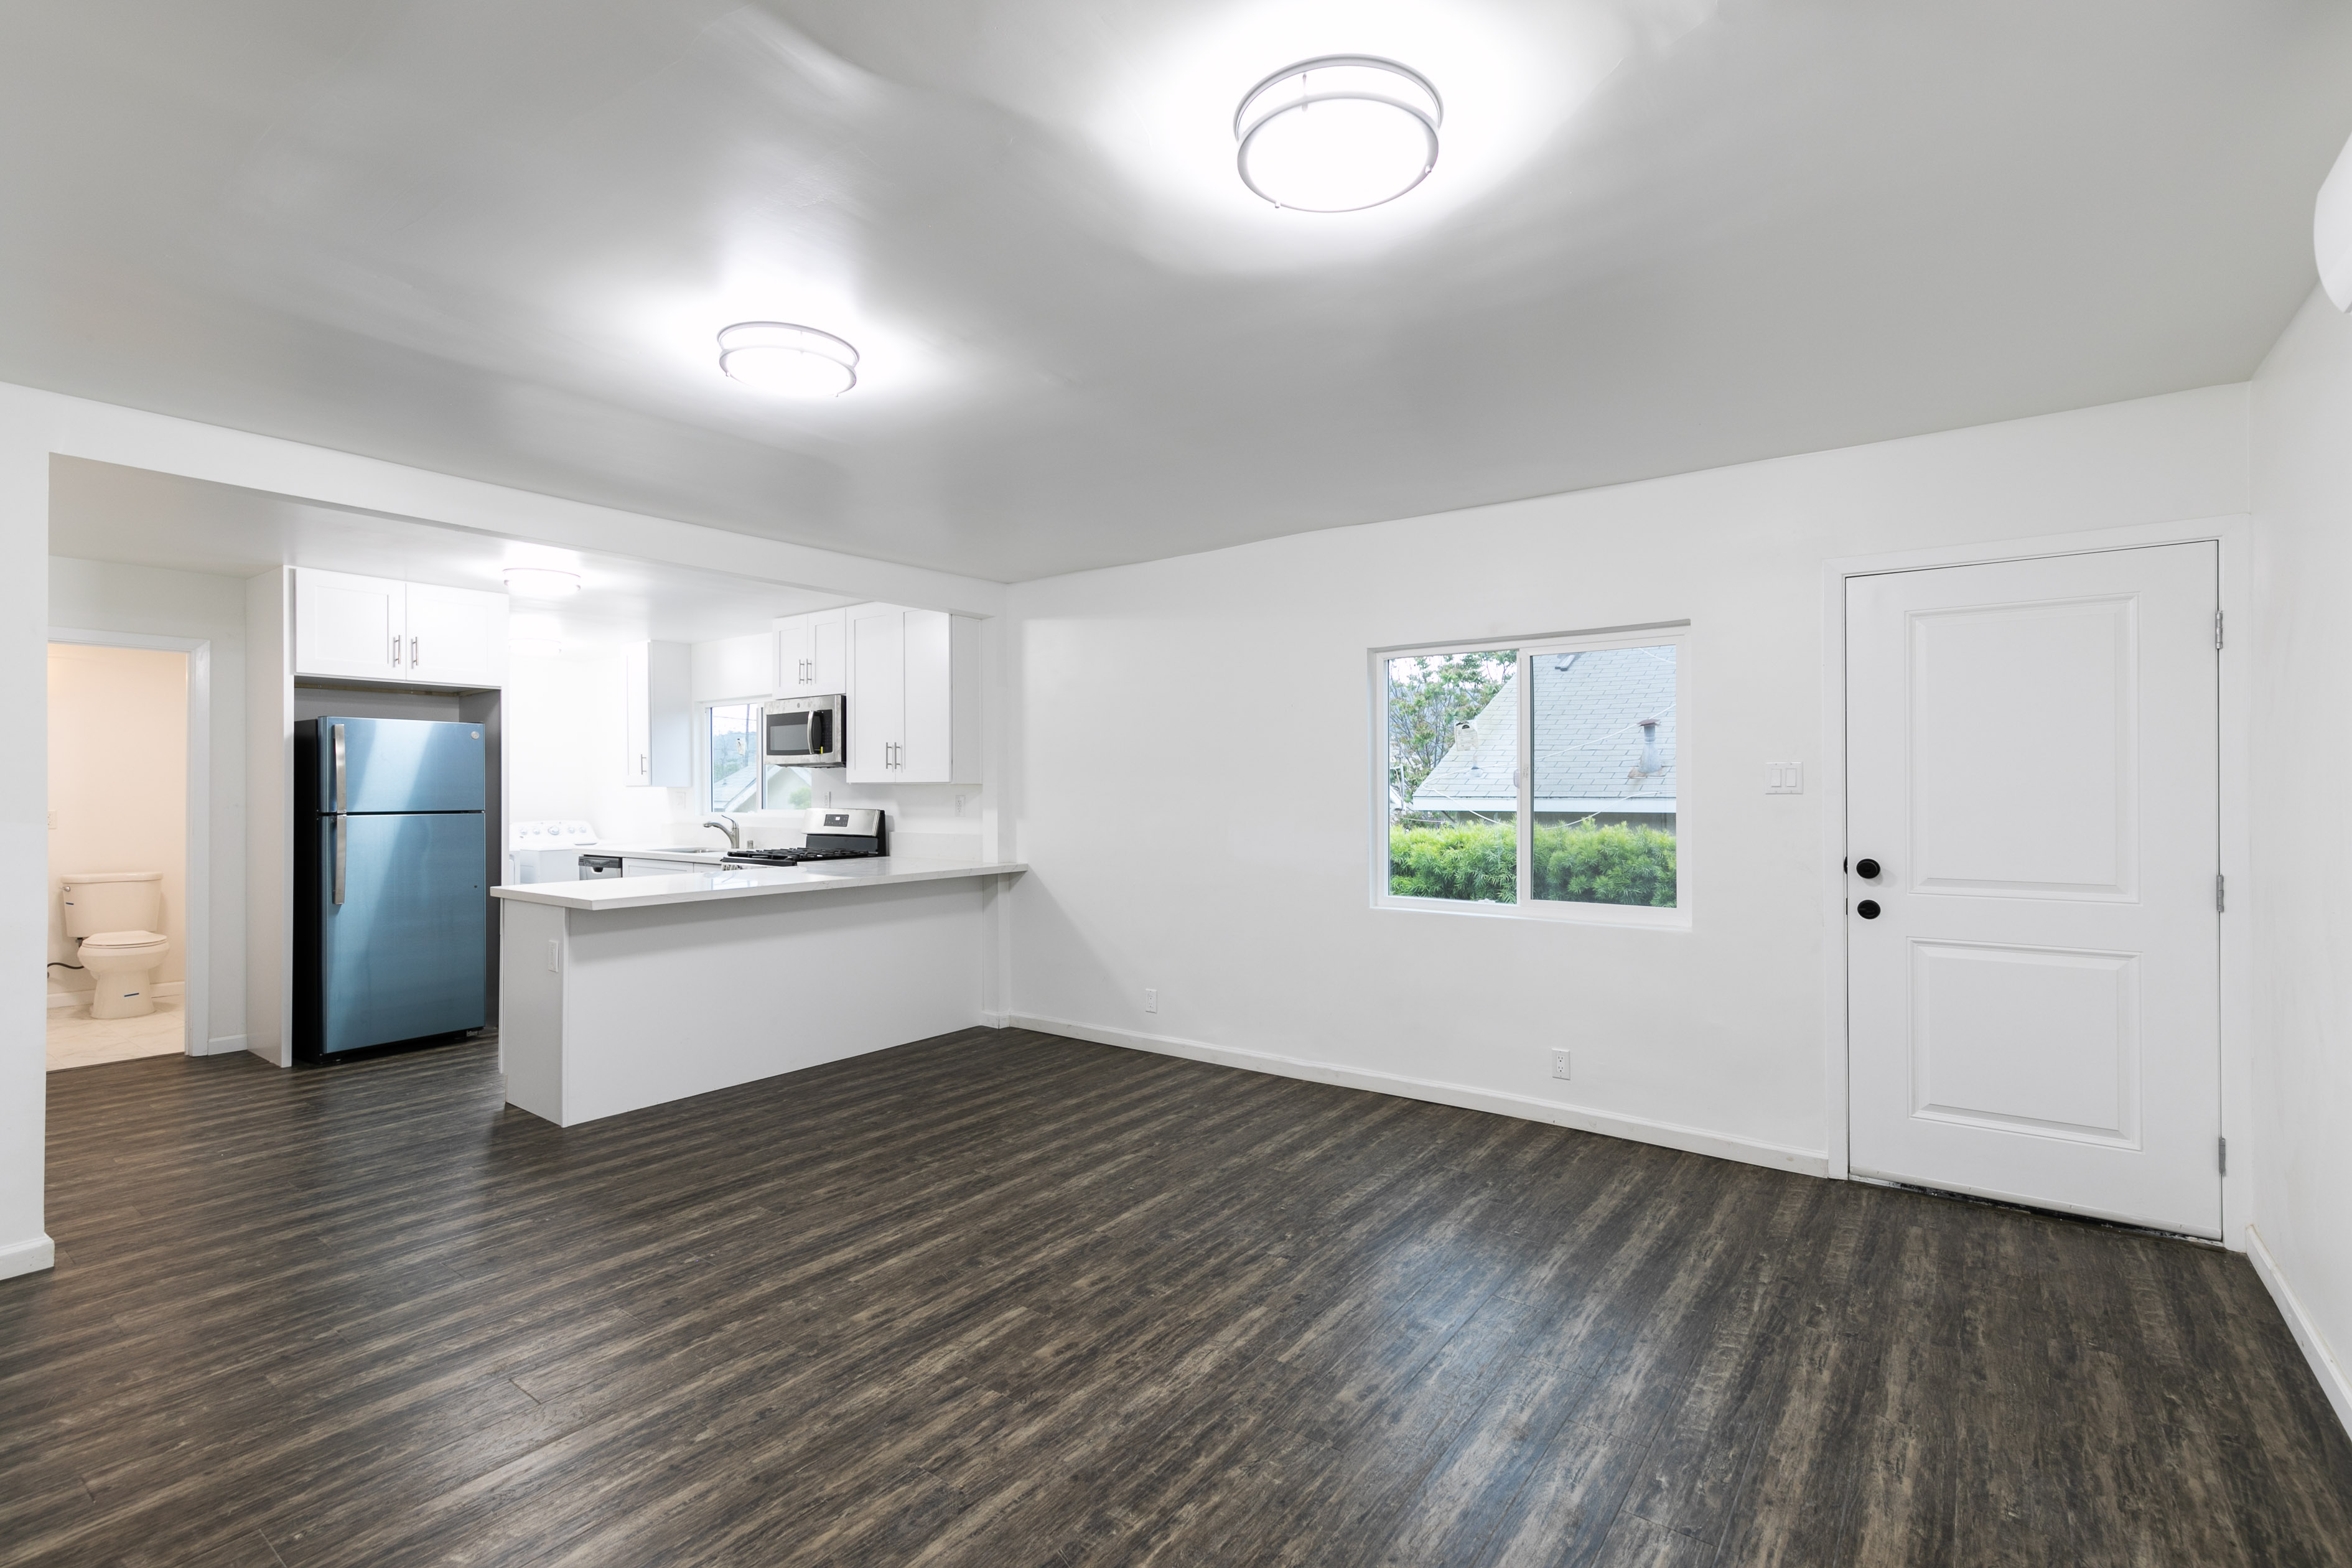 Newly Renovated 2 Bed/ 2 bath In Cypress Park | AC Included | W/D In Unit! | Parking Included + Private Patio